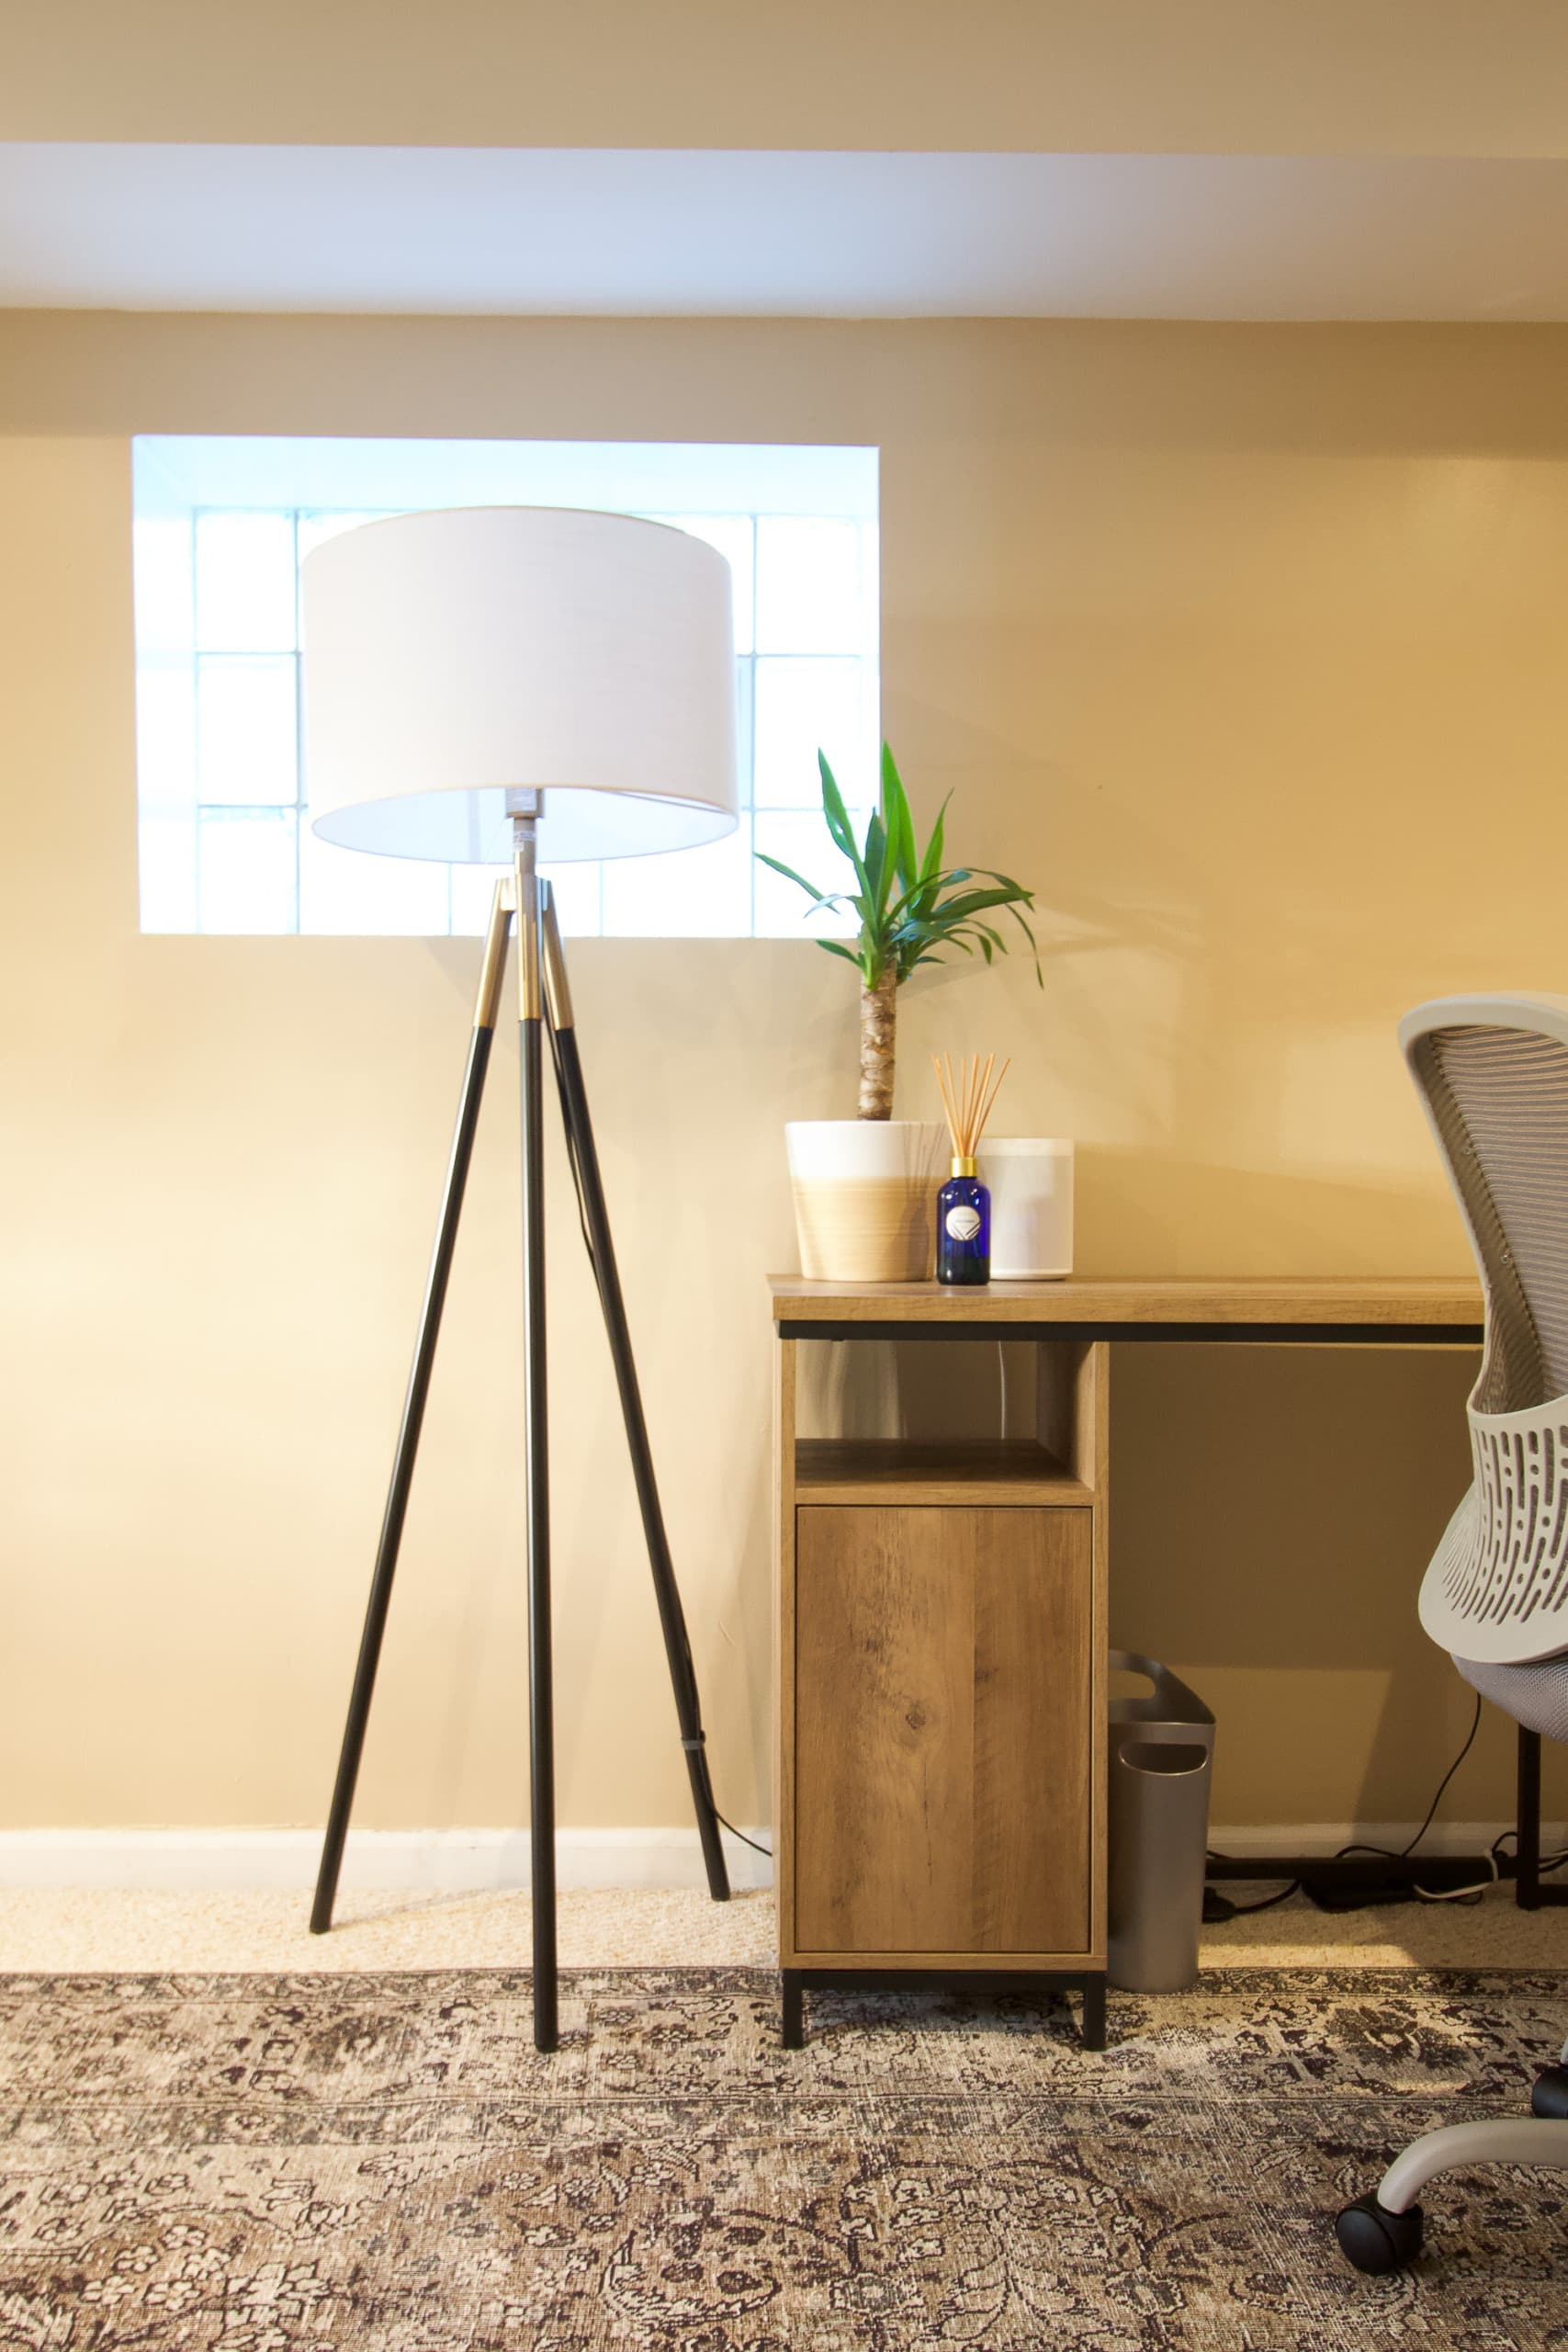 Adding a lamp to the basement